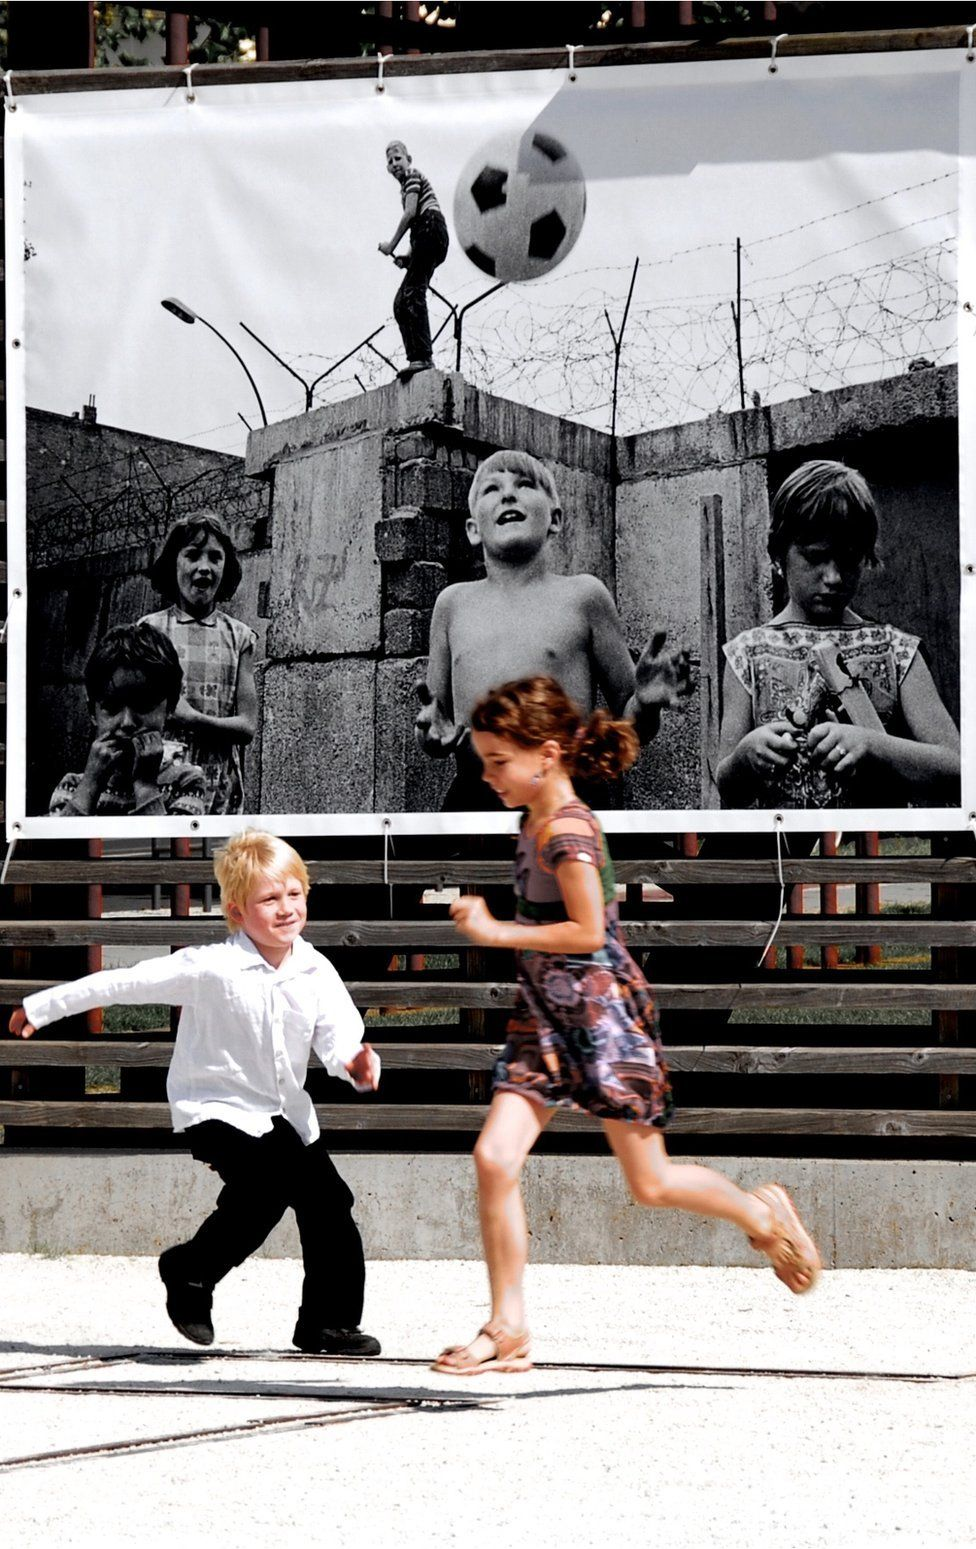 Children run in a playground in Berlin that has an old picture of children playing by the wall.